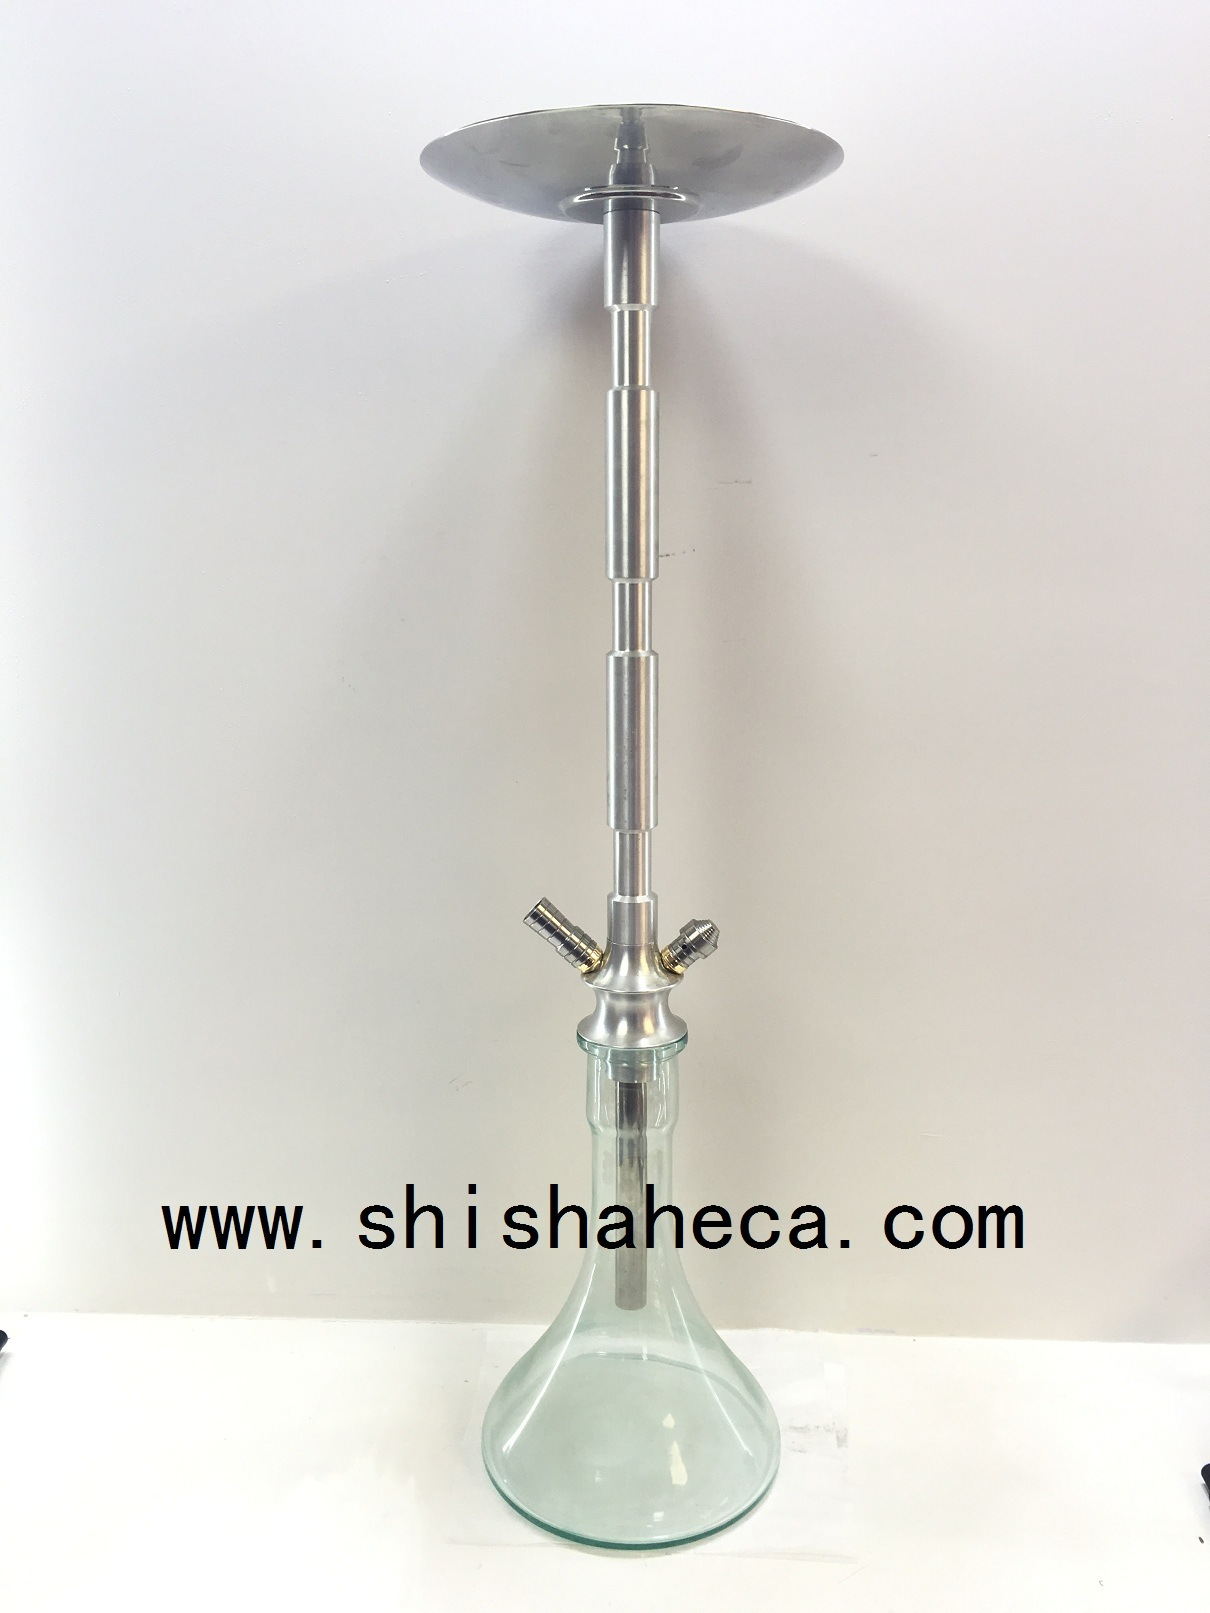 Wholesale Best Quality Aluminium Shisha Nargile Smoking Pipe Hookah